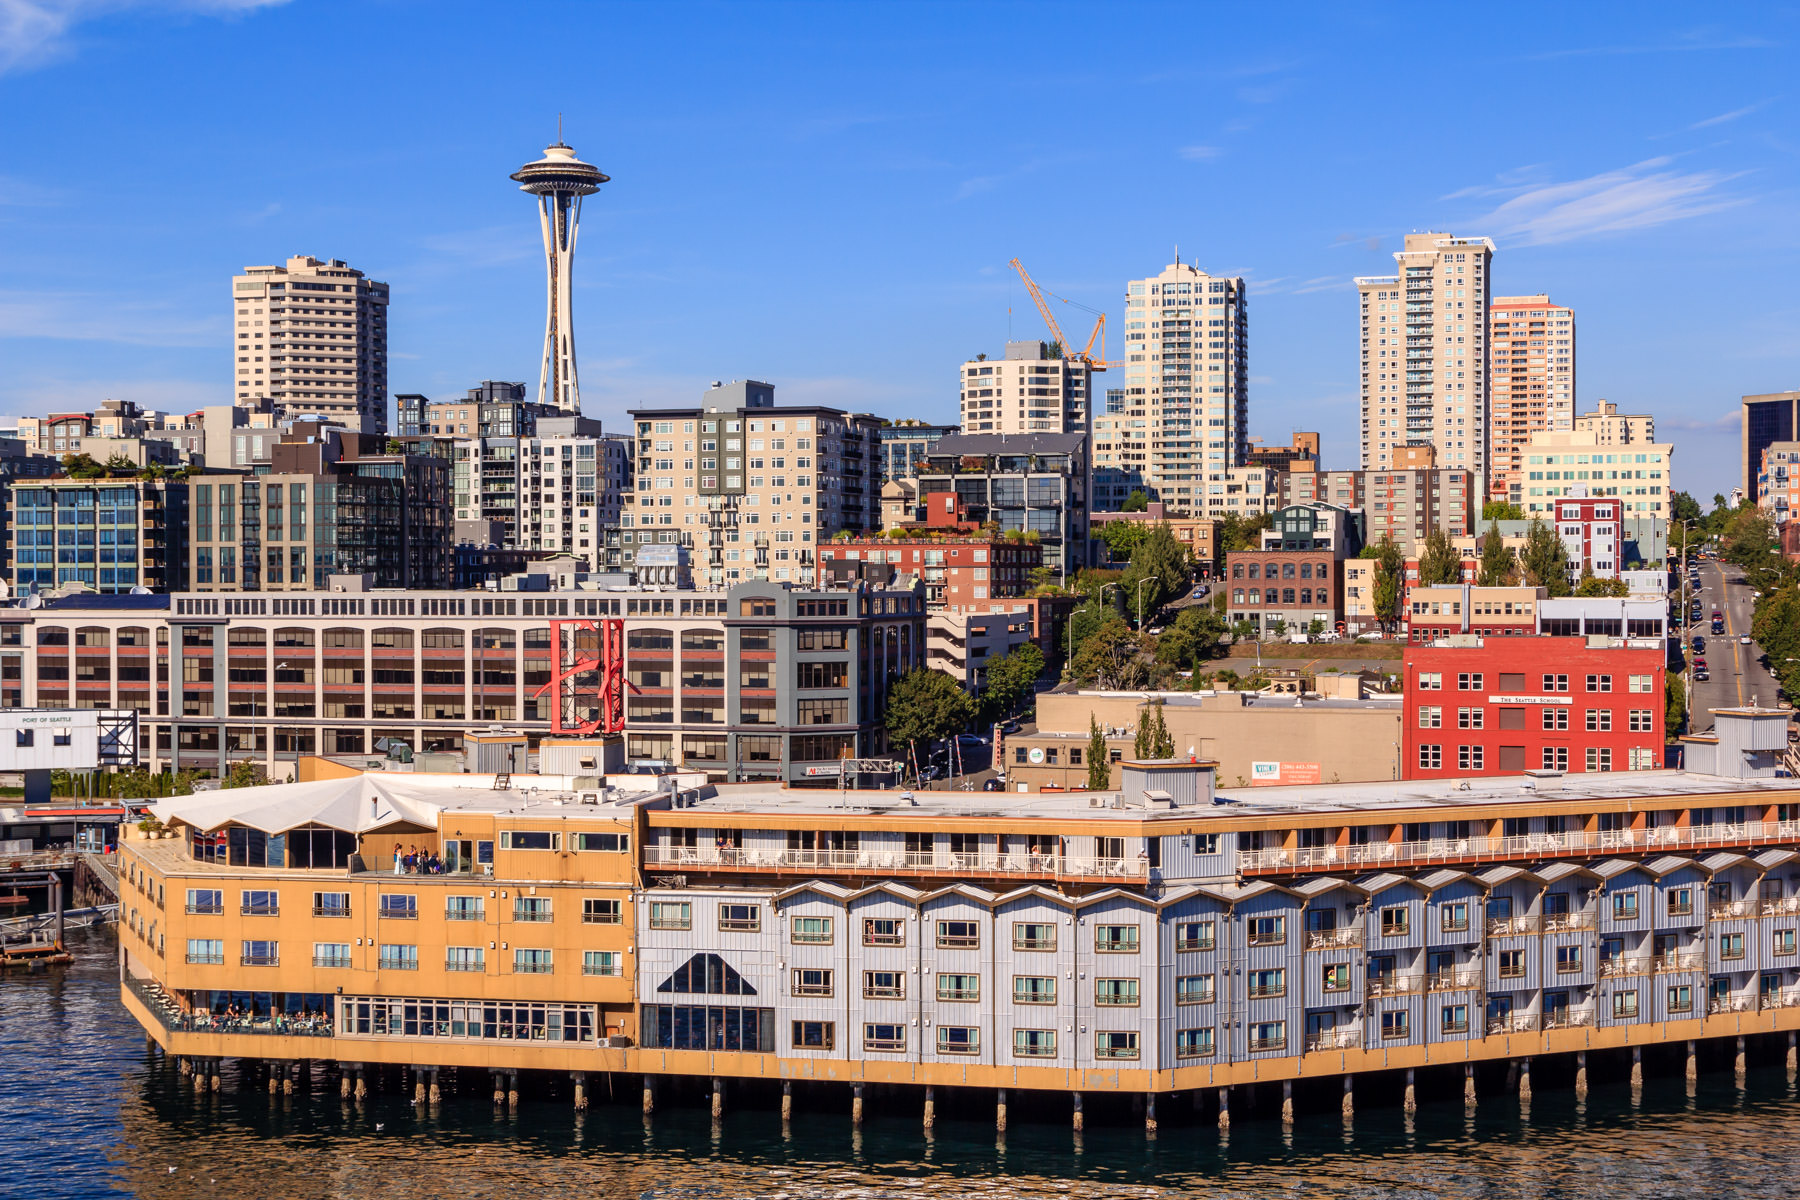 The Space Needle and part of Seattle's waterfront as seen from the deck of the cruise ship Norwegian Pearl.